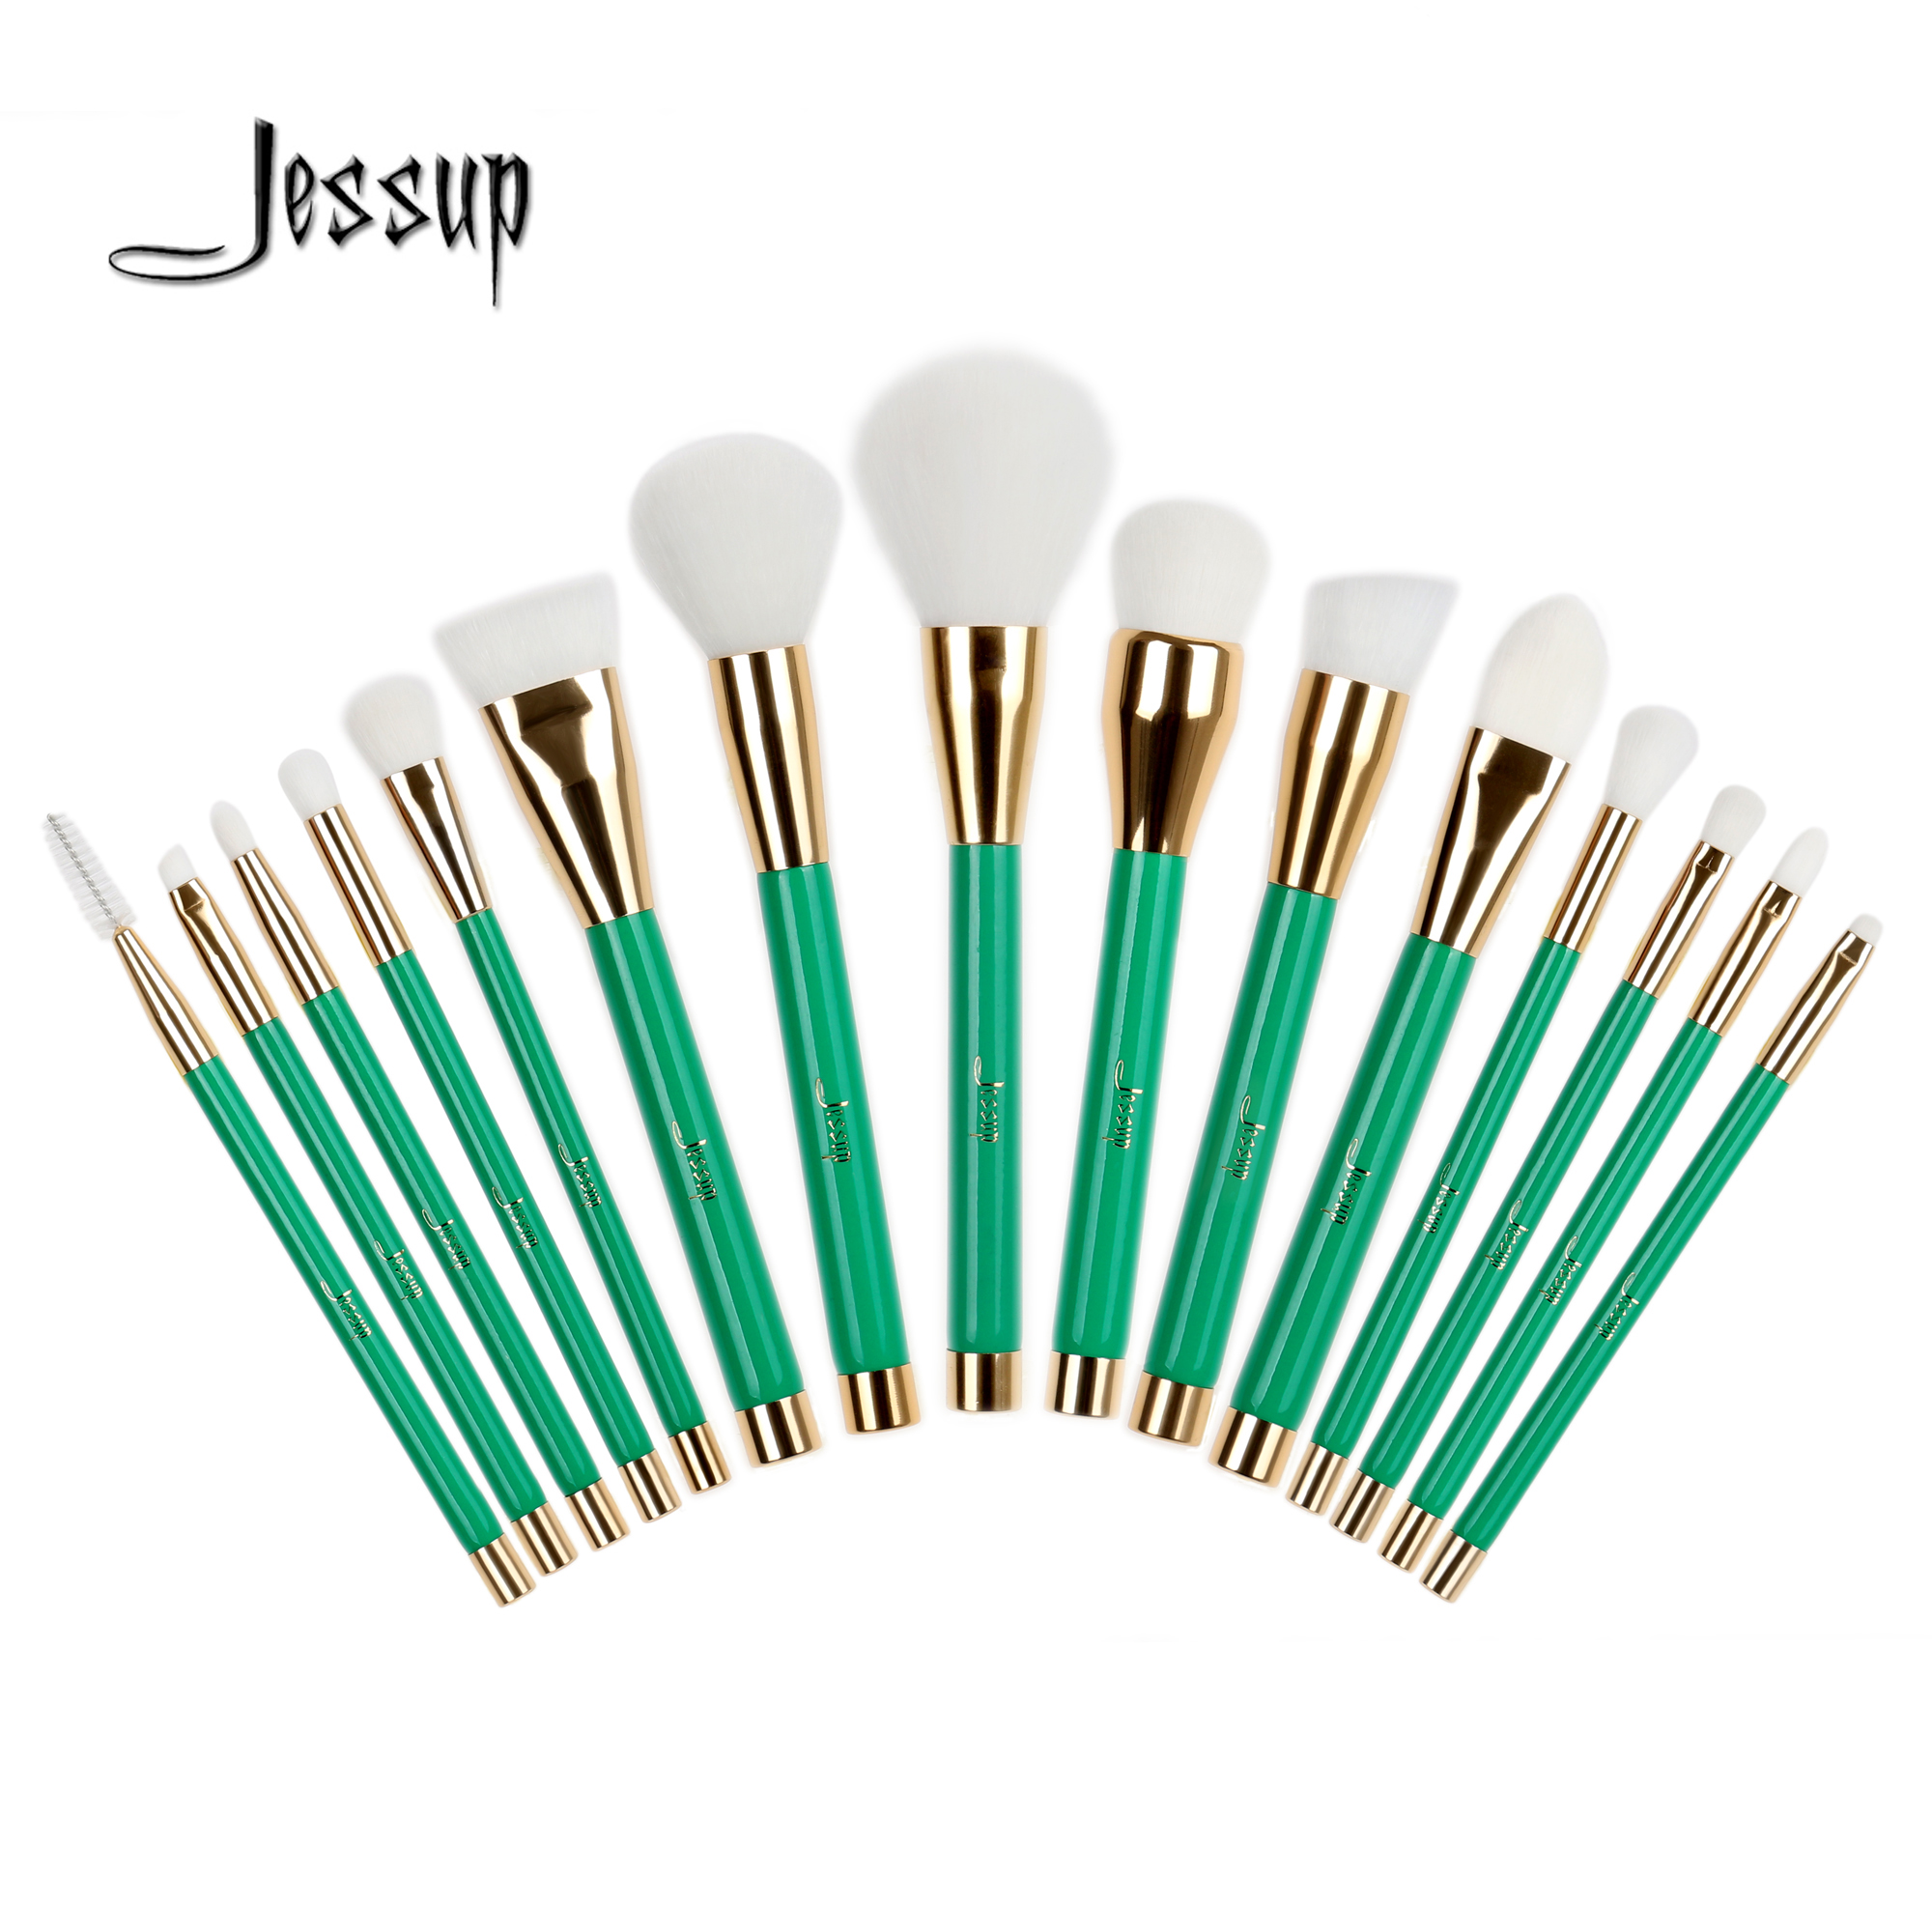 2017  Jessup New 15Pcs Professional Make-up Brushes Set Foundation Blusher Powder Eyeshadow Blending Eyebrow Makeup Brushes T116 just make up сухая подводка brow powder 116 цвет 116 variant hex name 947962